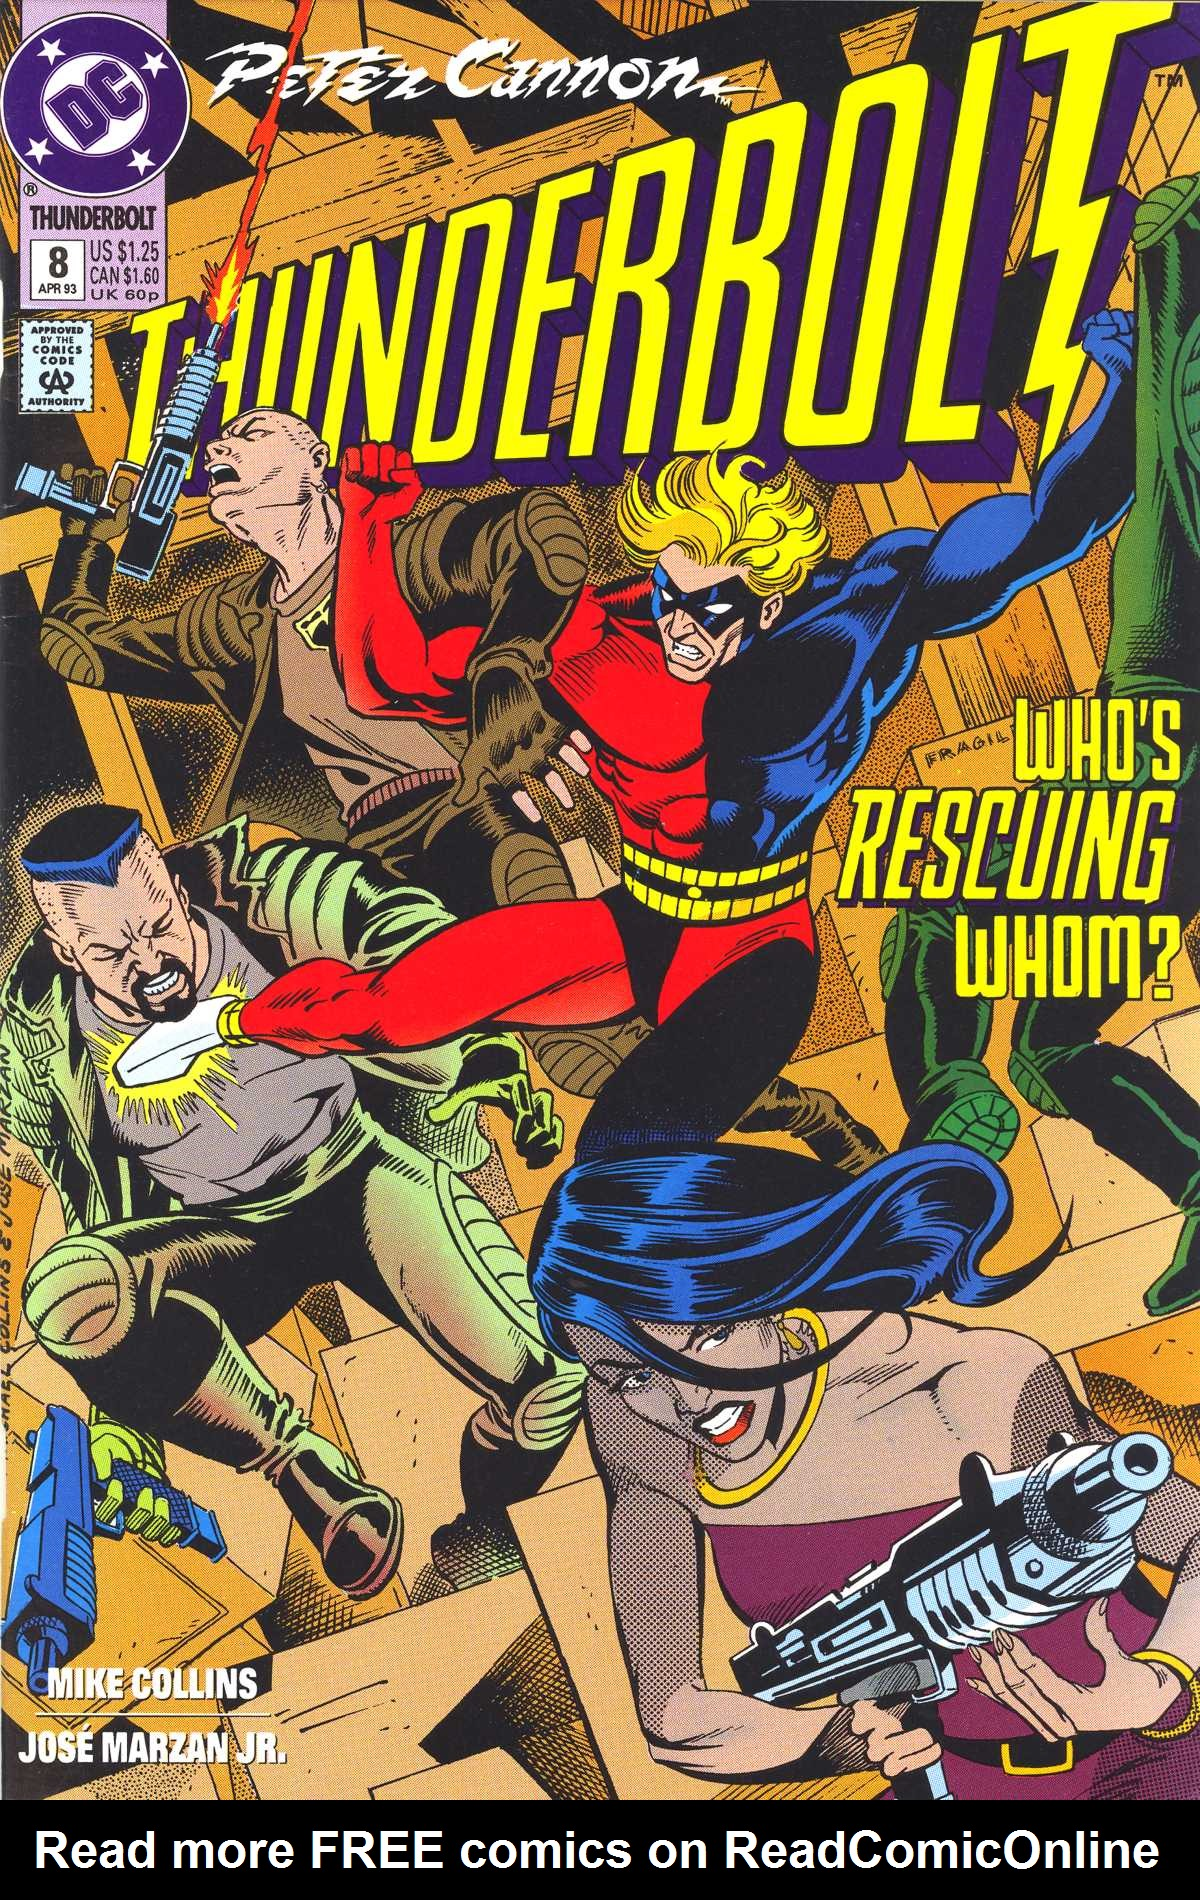 Read online Peter Cannon--Thunderbolt (1992) comic -  Issue #8 - 1